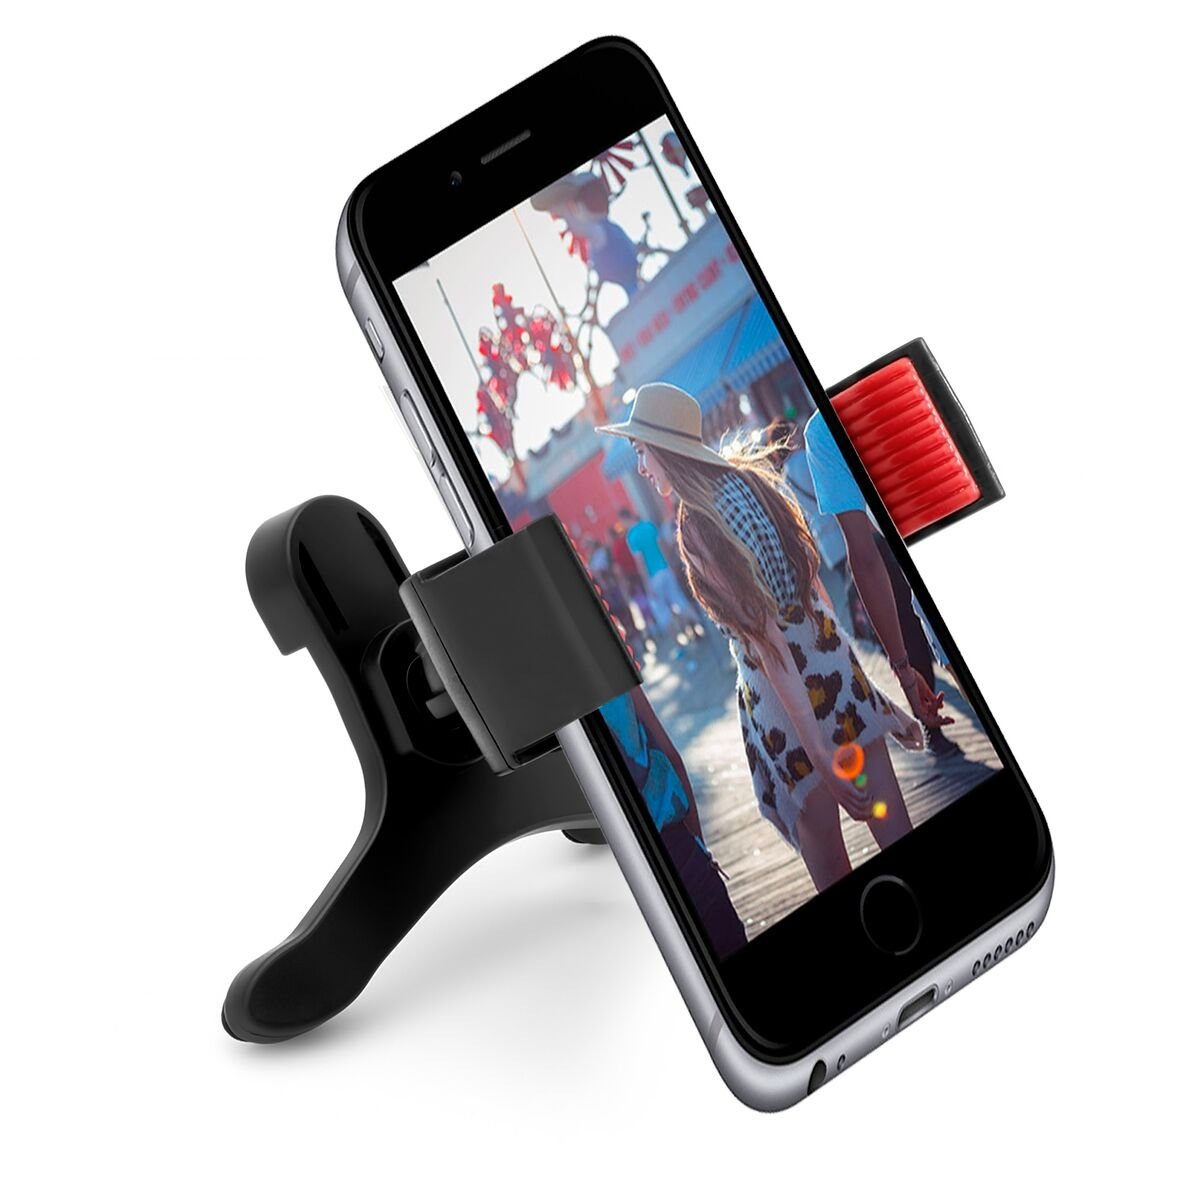 Affordable Universal Air Vent Car Mount Holder for iPhone 6 Plus, cellphone, smartphones, galaxy, and gps